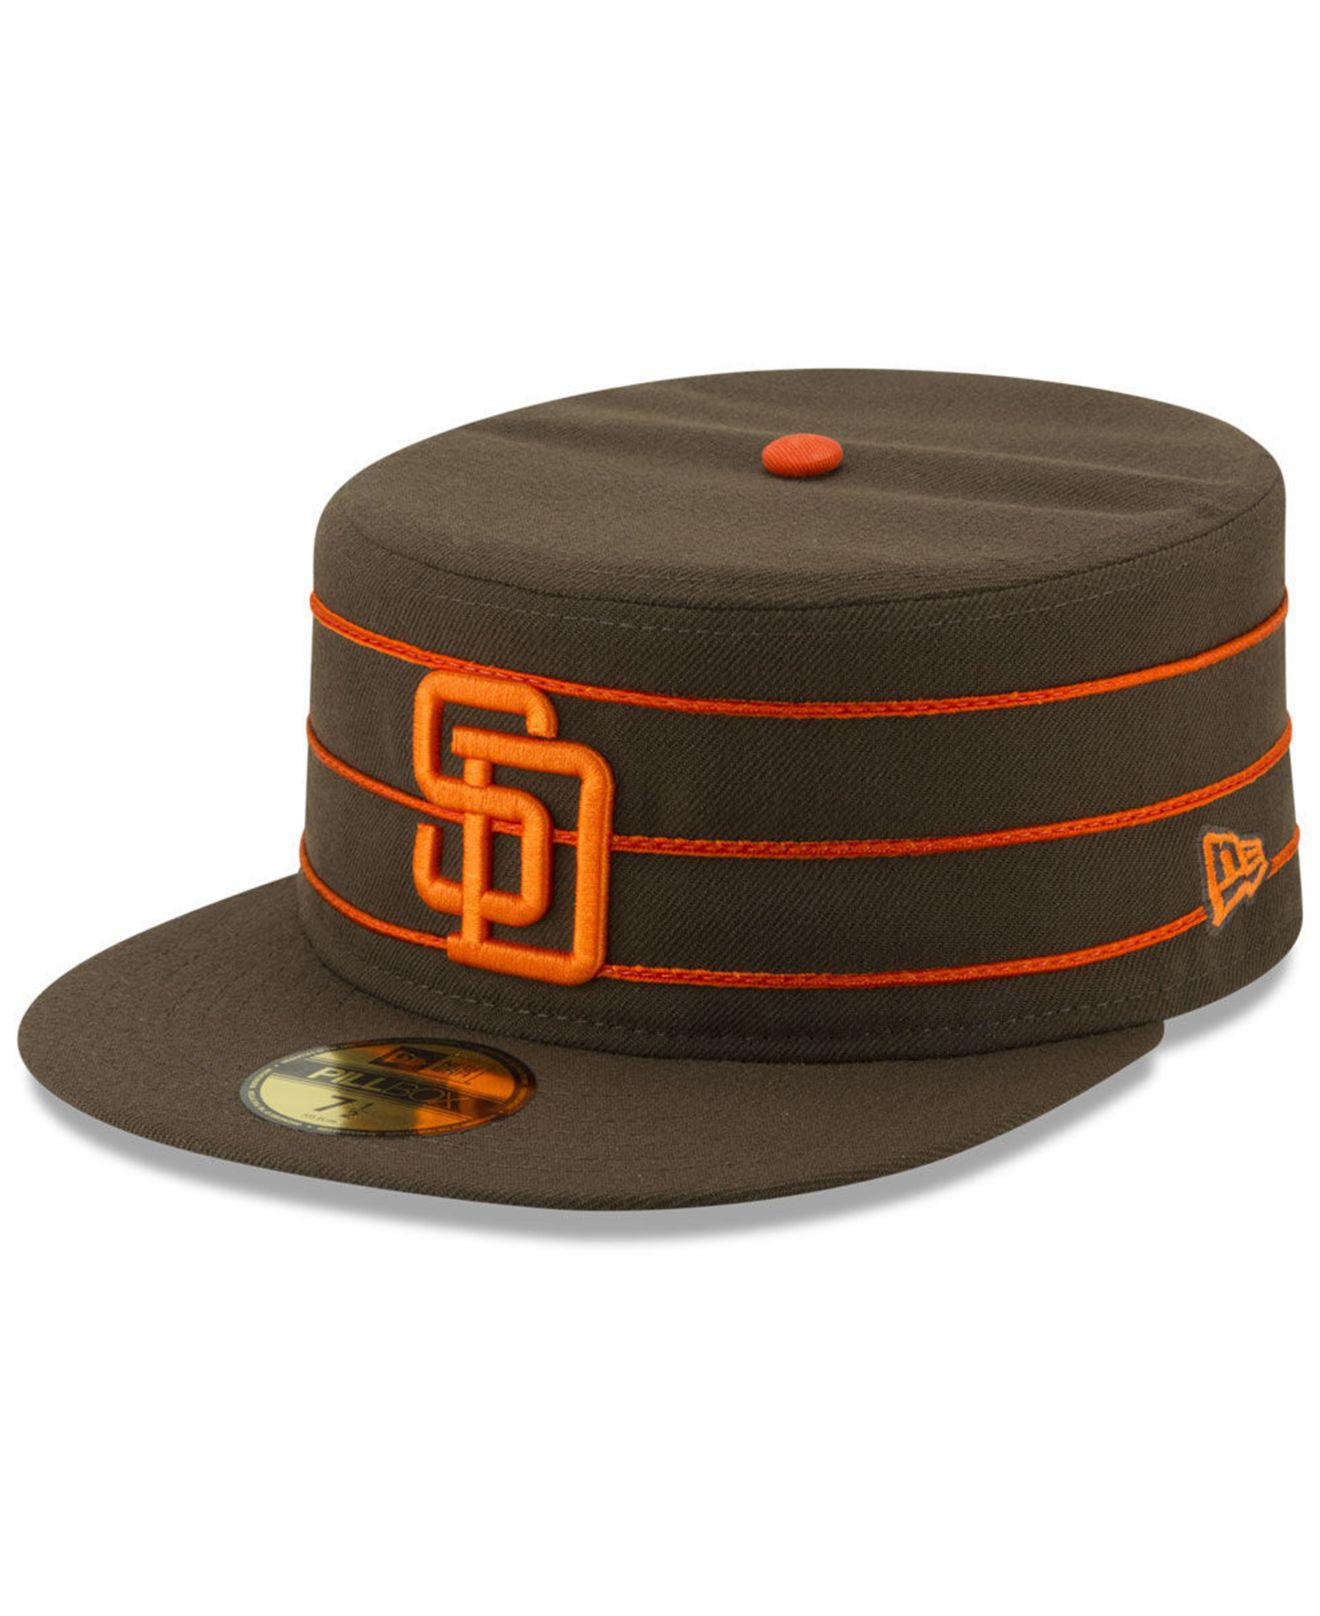 Lyst - KTZ San Diego Padres Pillbox 59fifty-fitted Cap in Brown for Men a93071a16